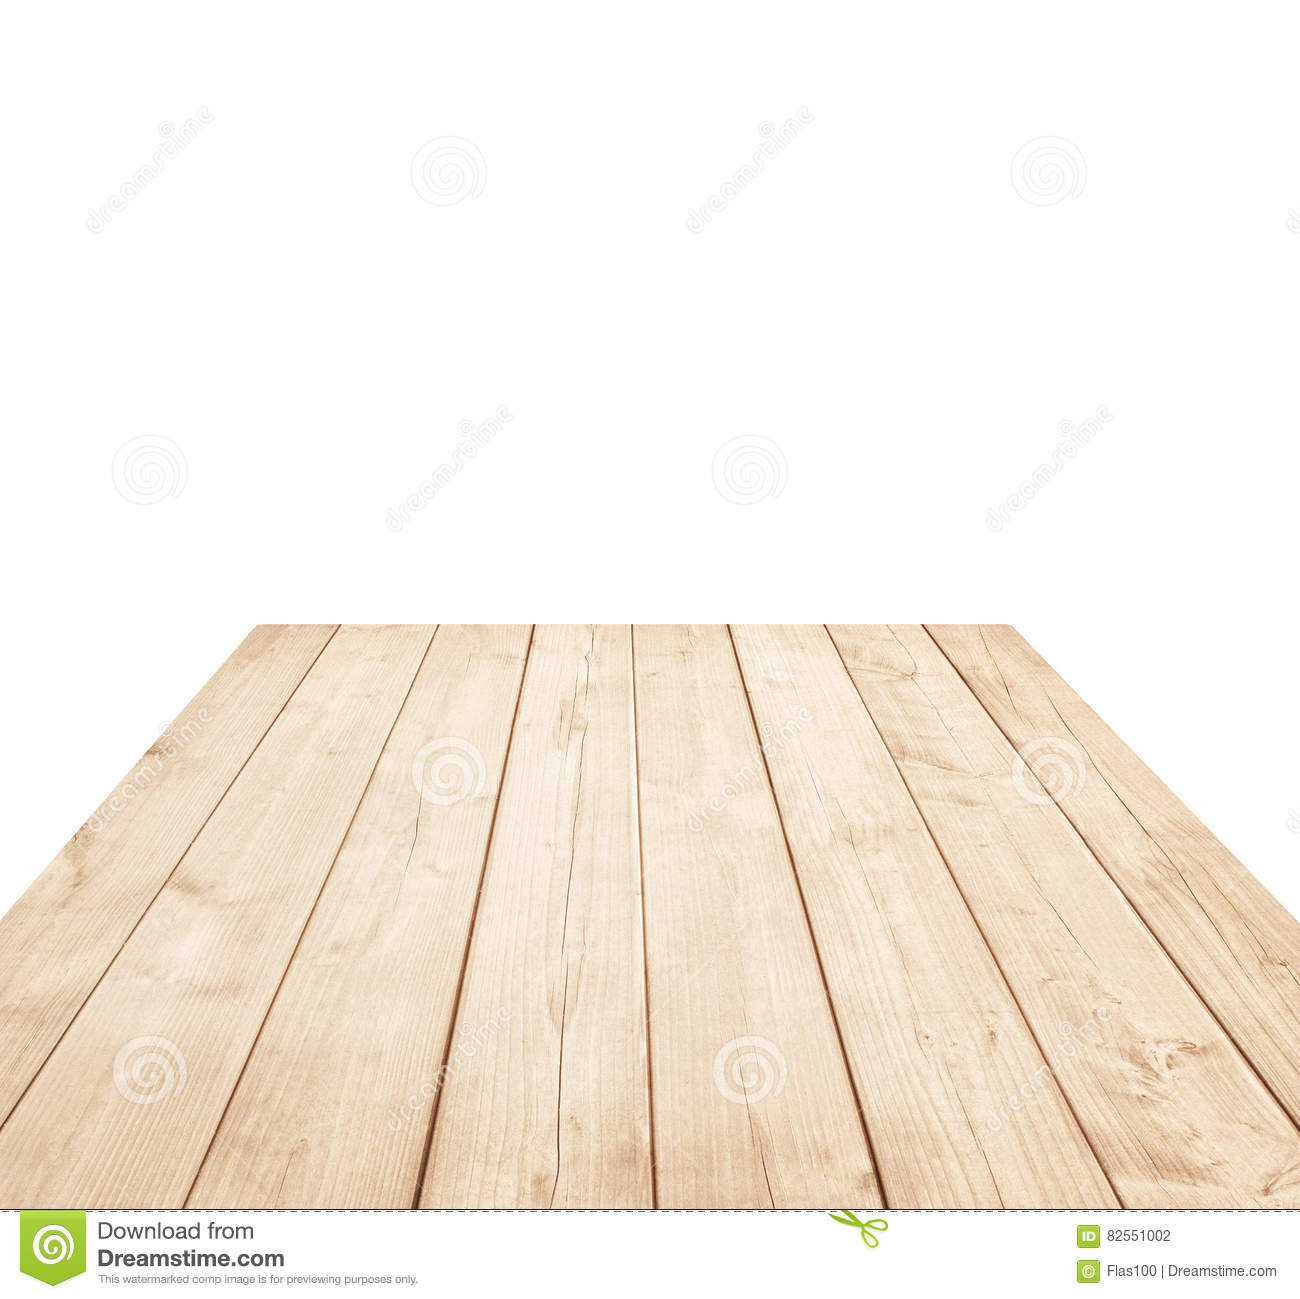 Empty brown wooden tabletop, vertical planks on white background